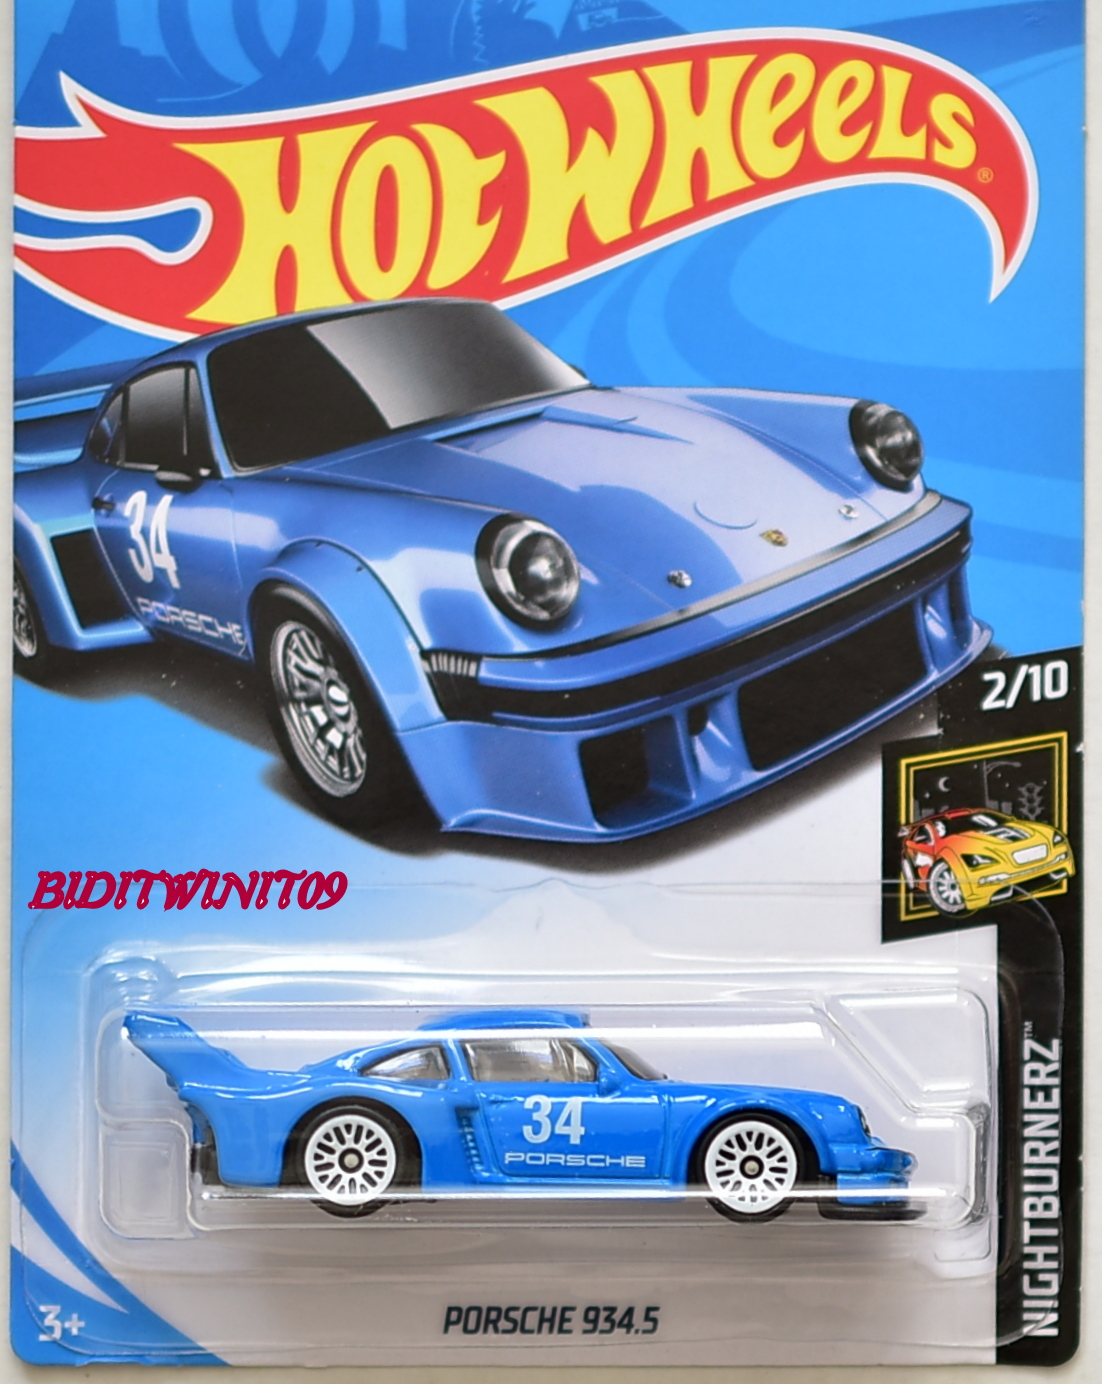 HOT WHEELS 2018 NIGHTBURNERZ PORSCHE 934.5 #2/10 BLUE